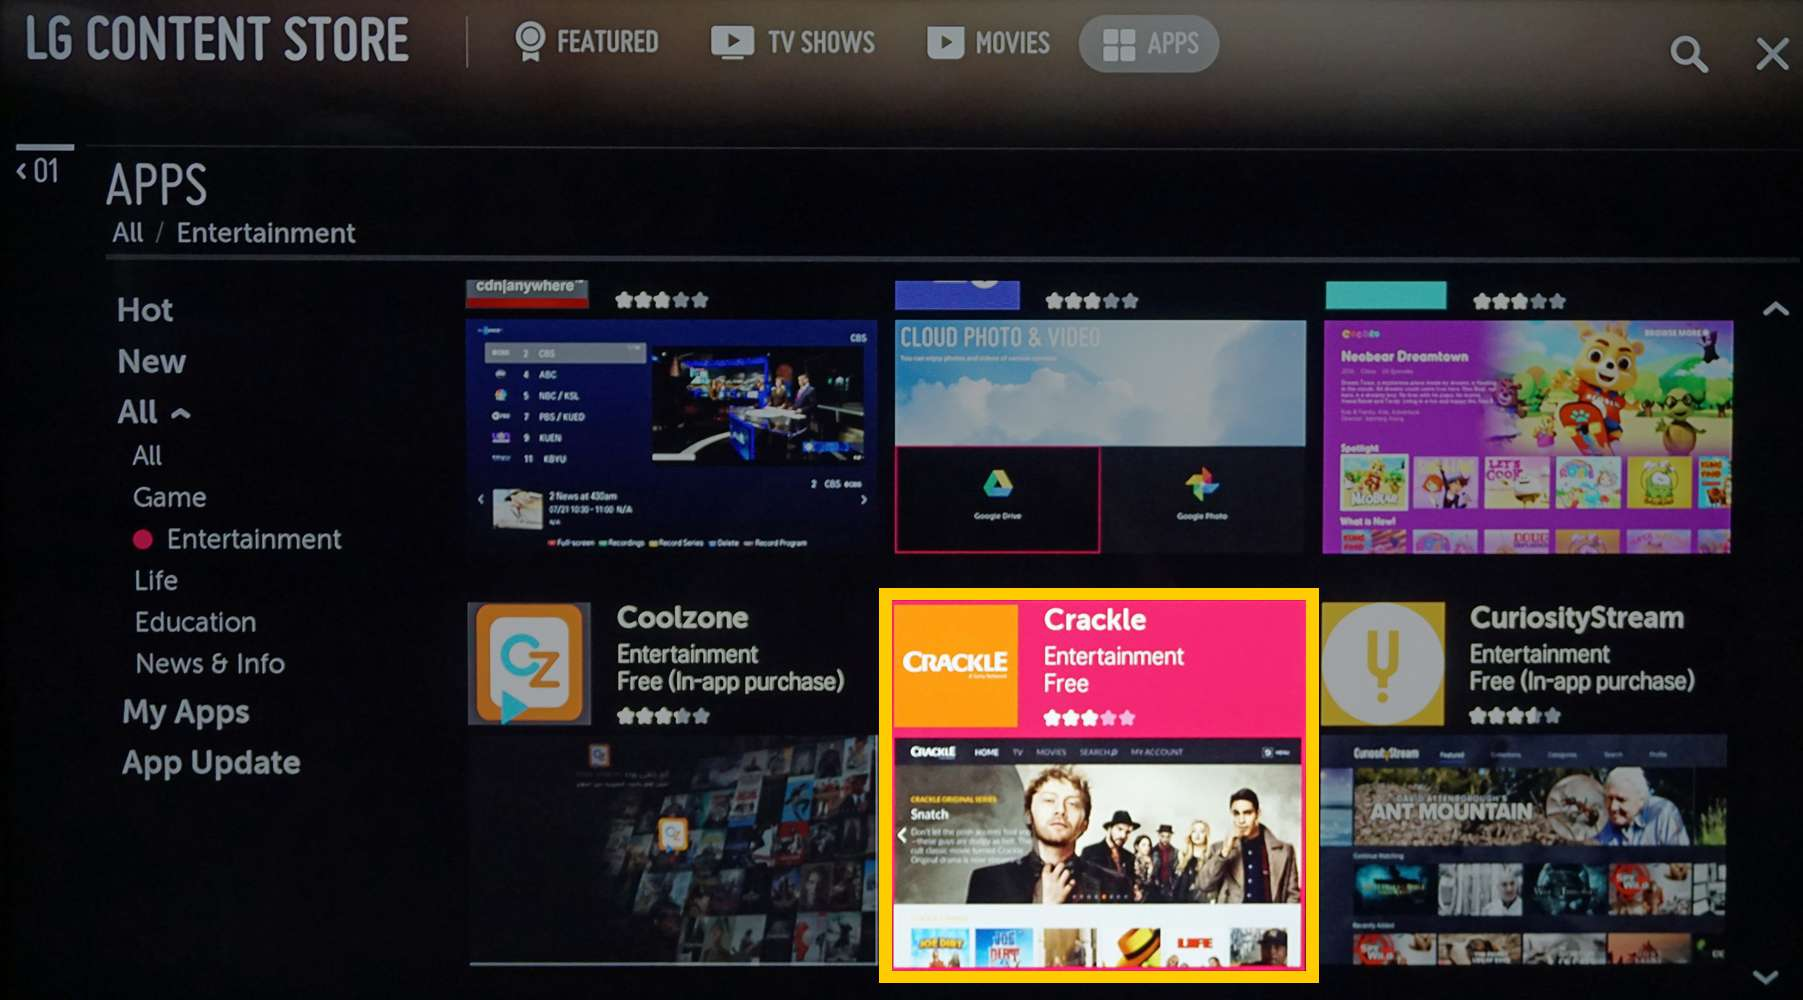 LG Content Store with the Crackle app selected